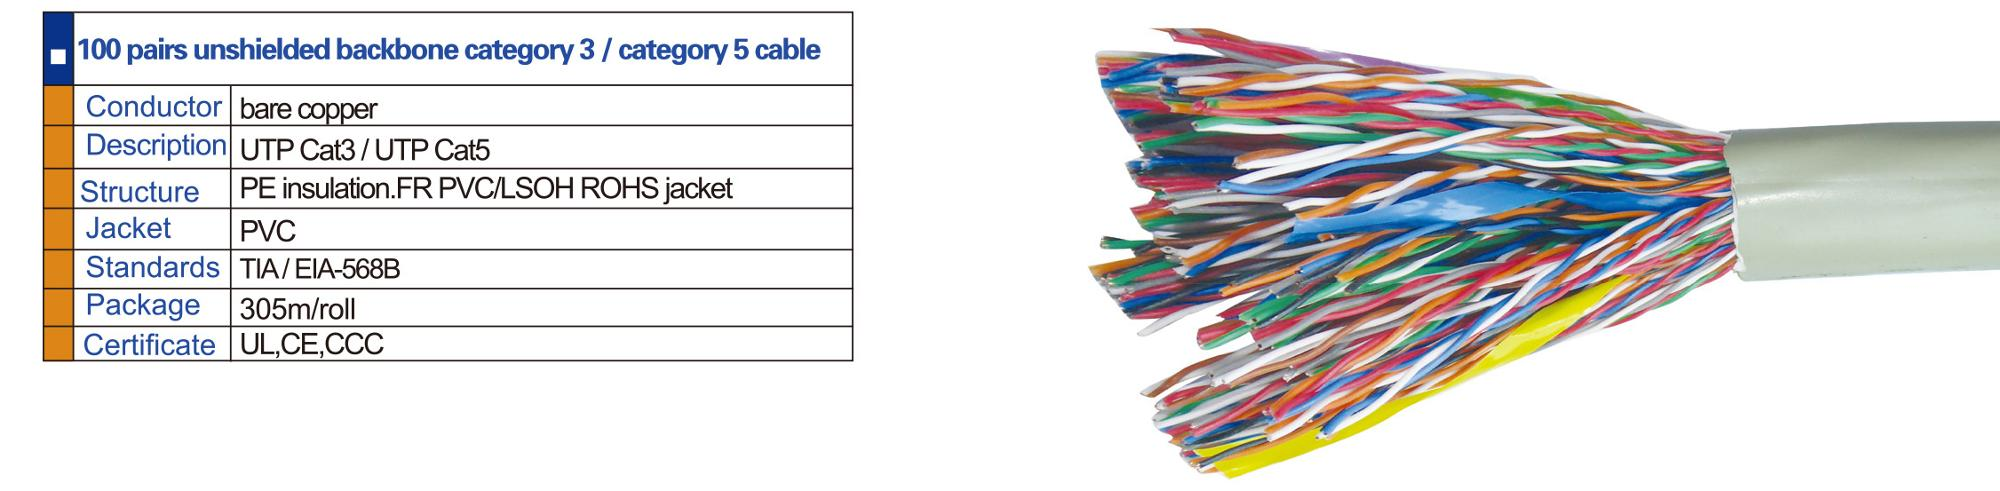 100 Pairs Unshielded Backbone Category 3 5 Pvc 305m 568b Color Code Telephone Cable